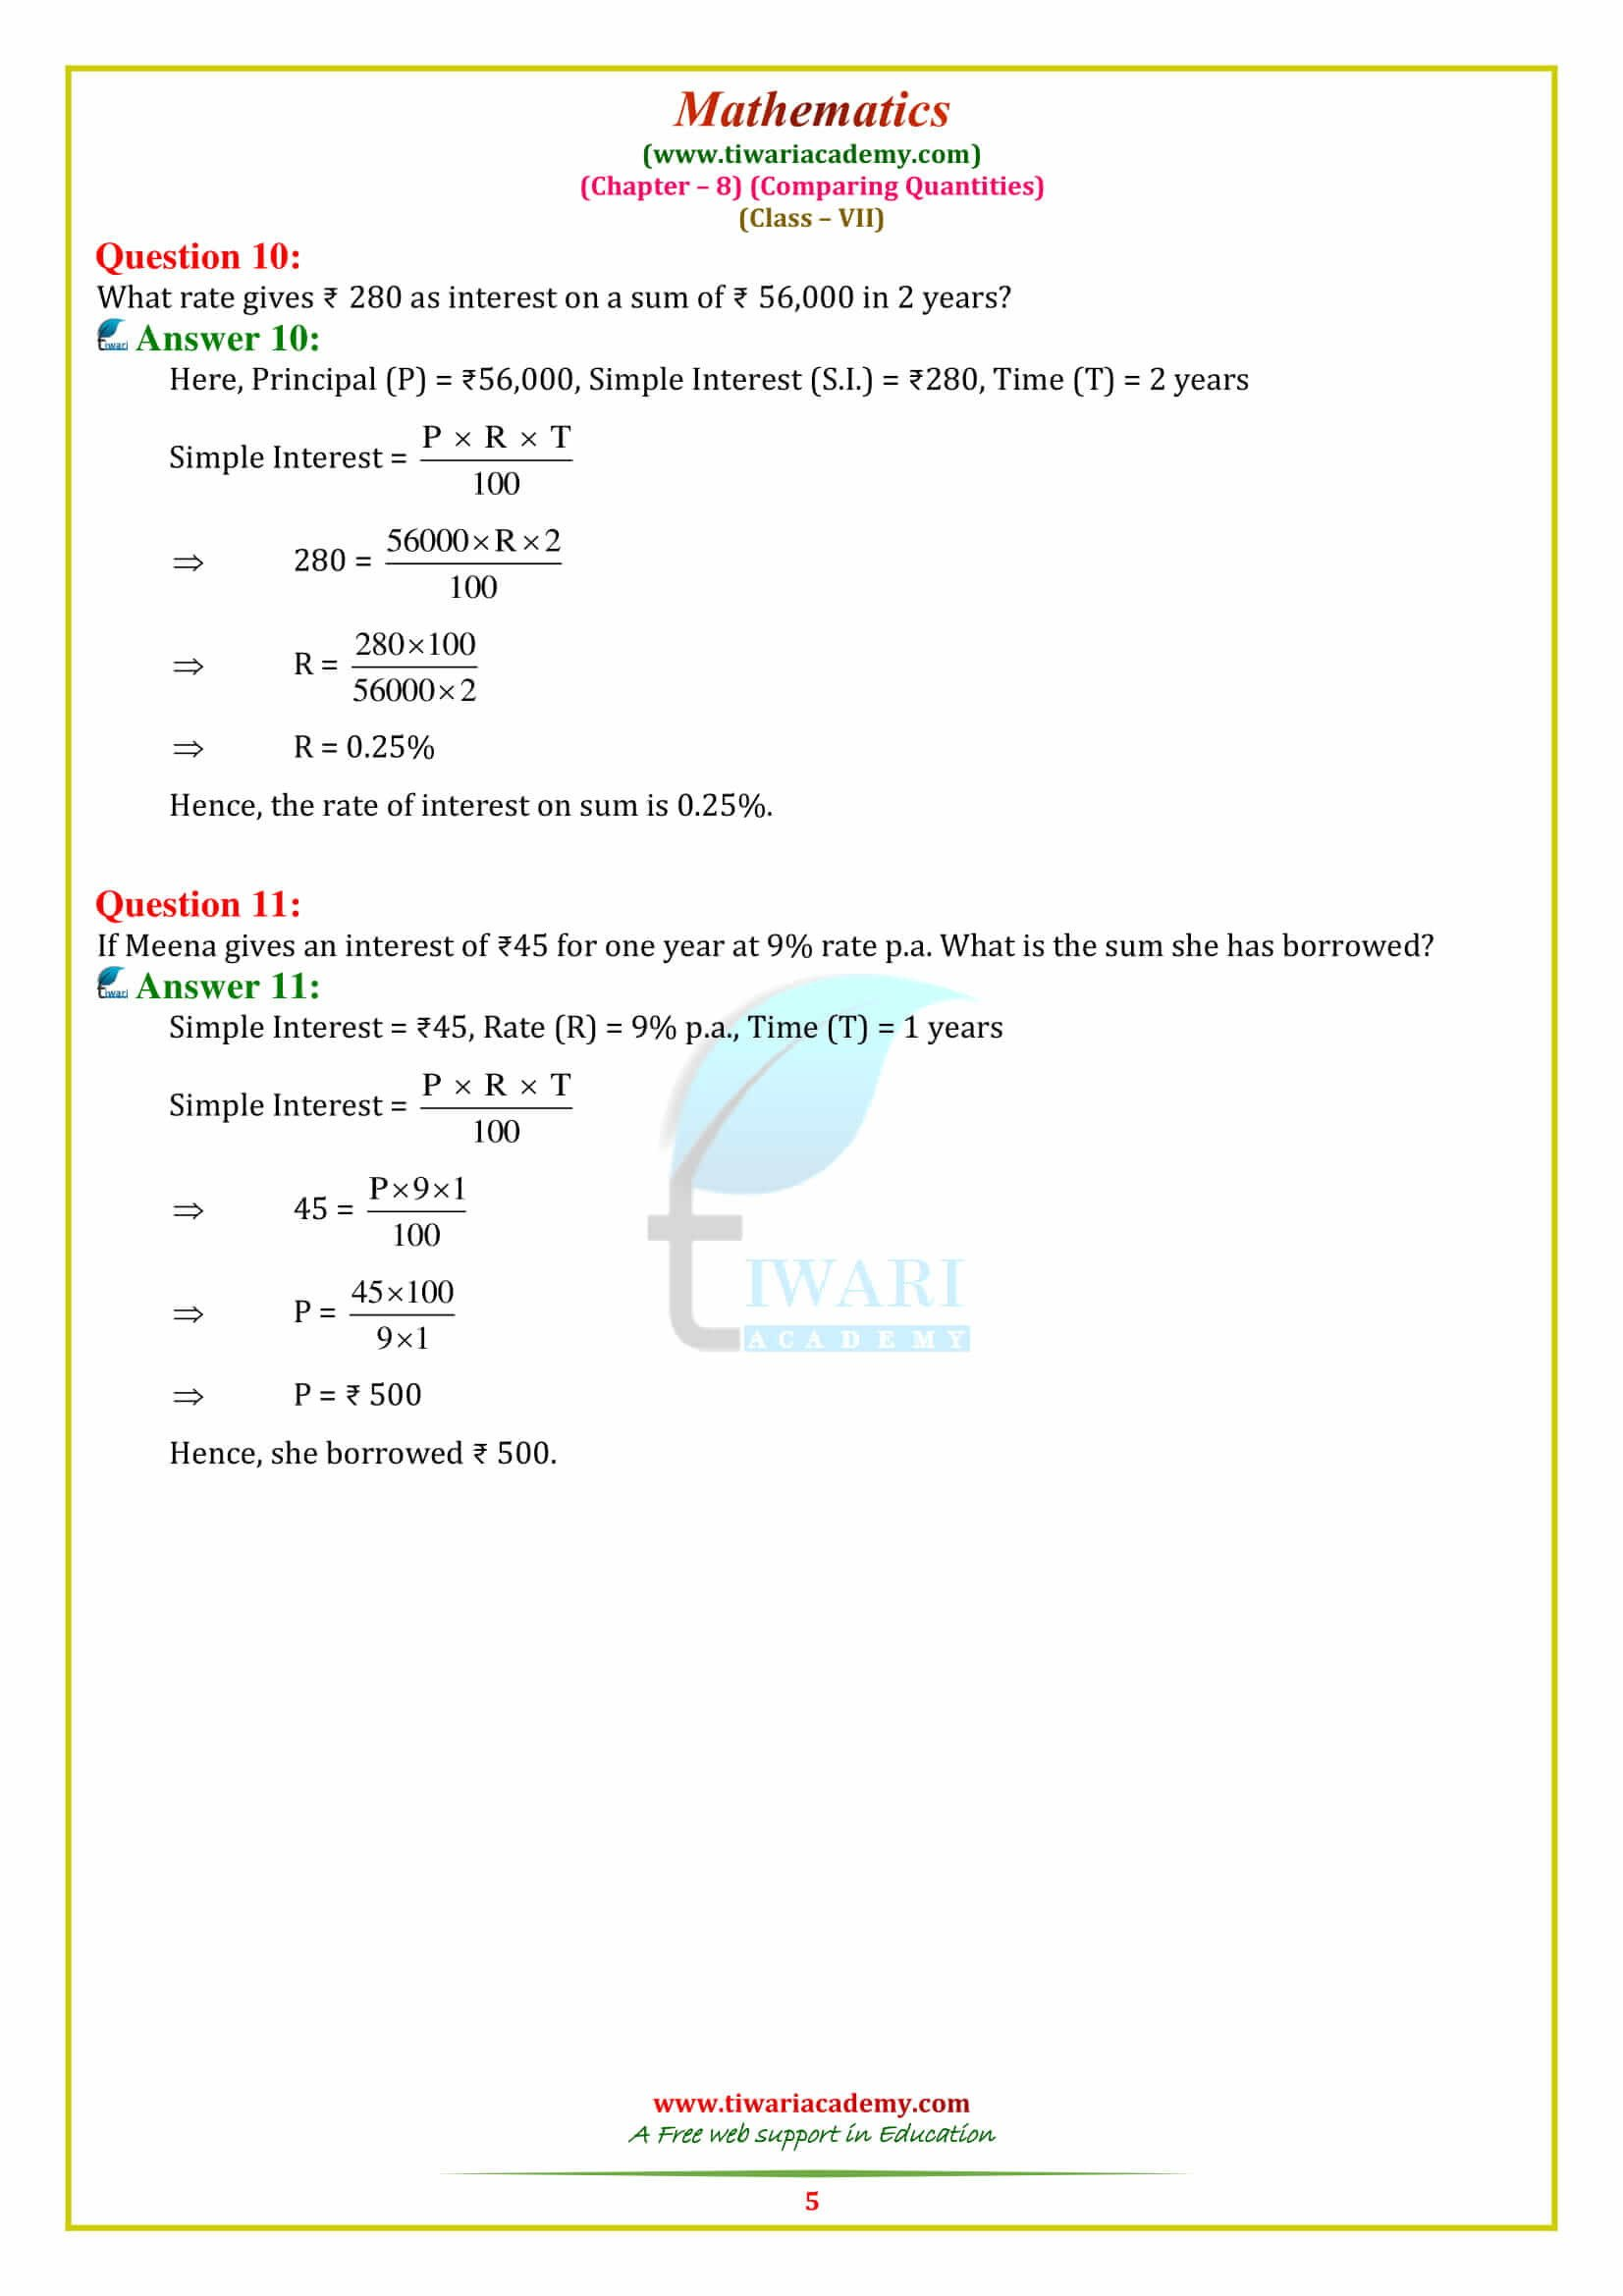 Comparing Quantities Worksheets Paring Quantities Worksheet for Class 8